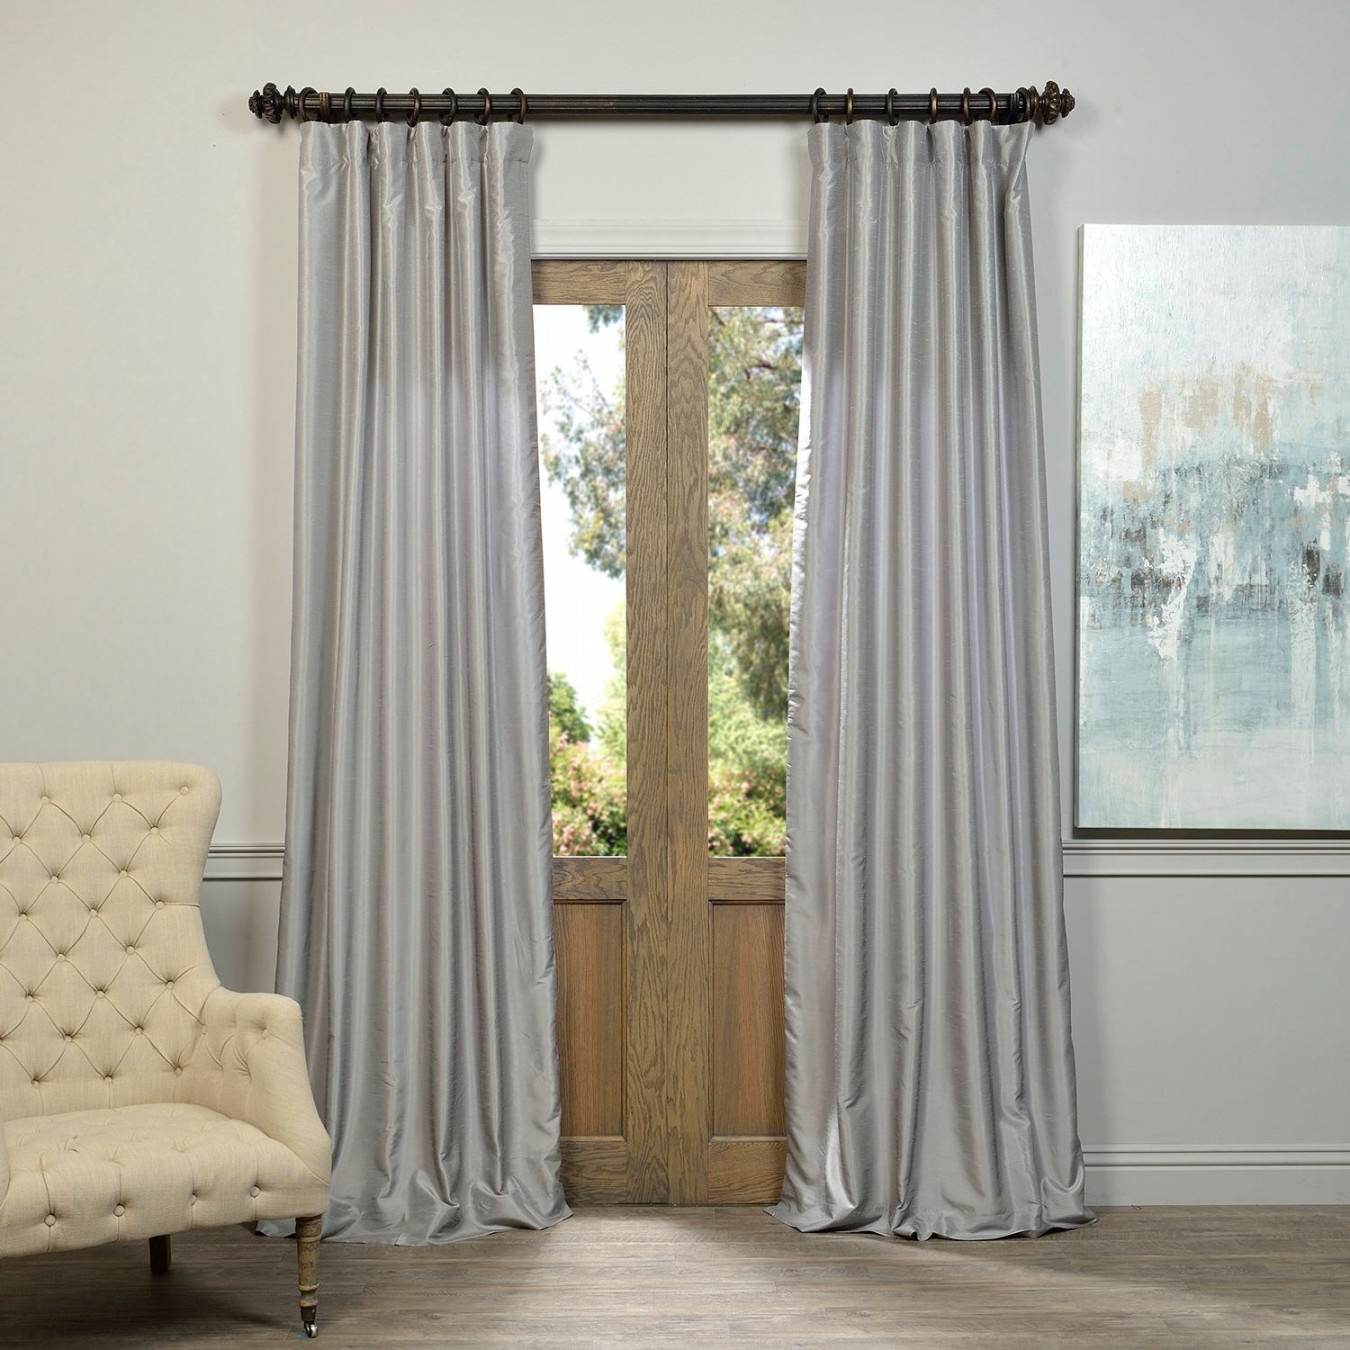 12 Silk Curtains Texture 2019 – Pinnedmtb With Regard To Ice White Vintage Faux Textured Silk Curtain Panels (View 18 of 20)